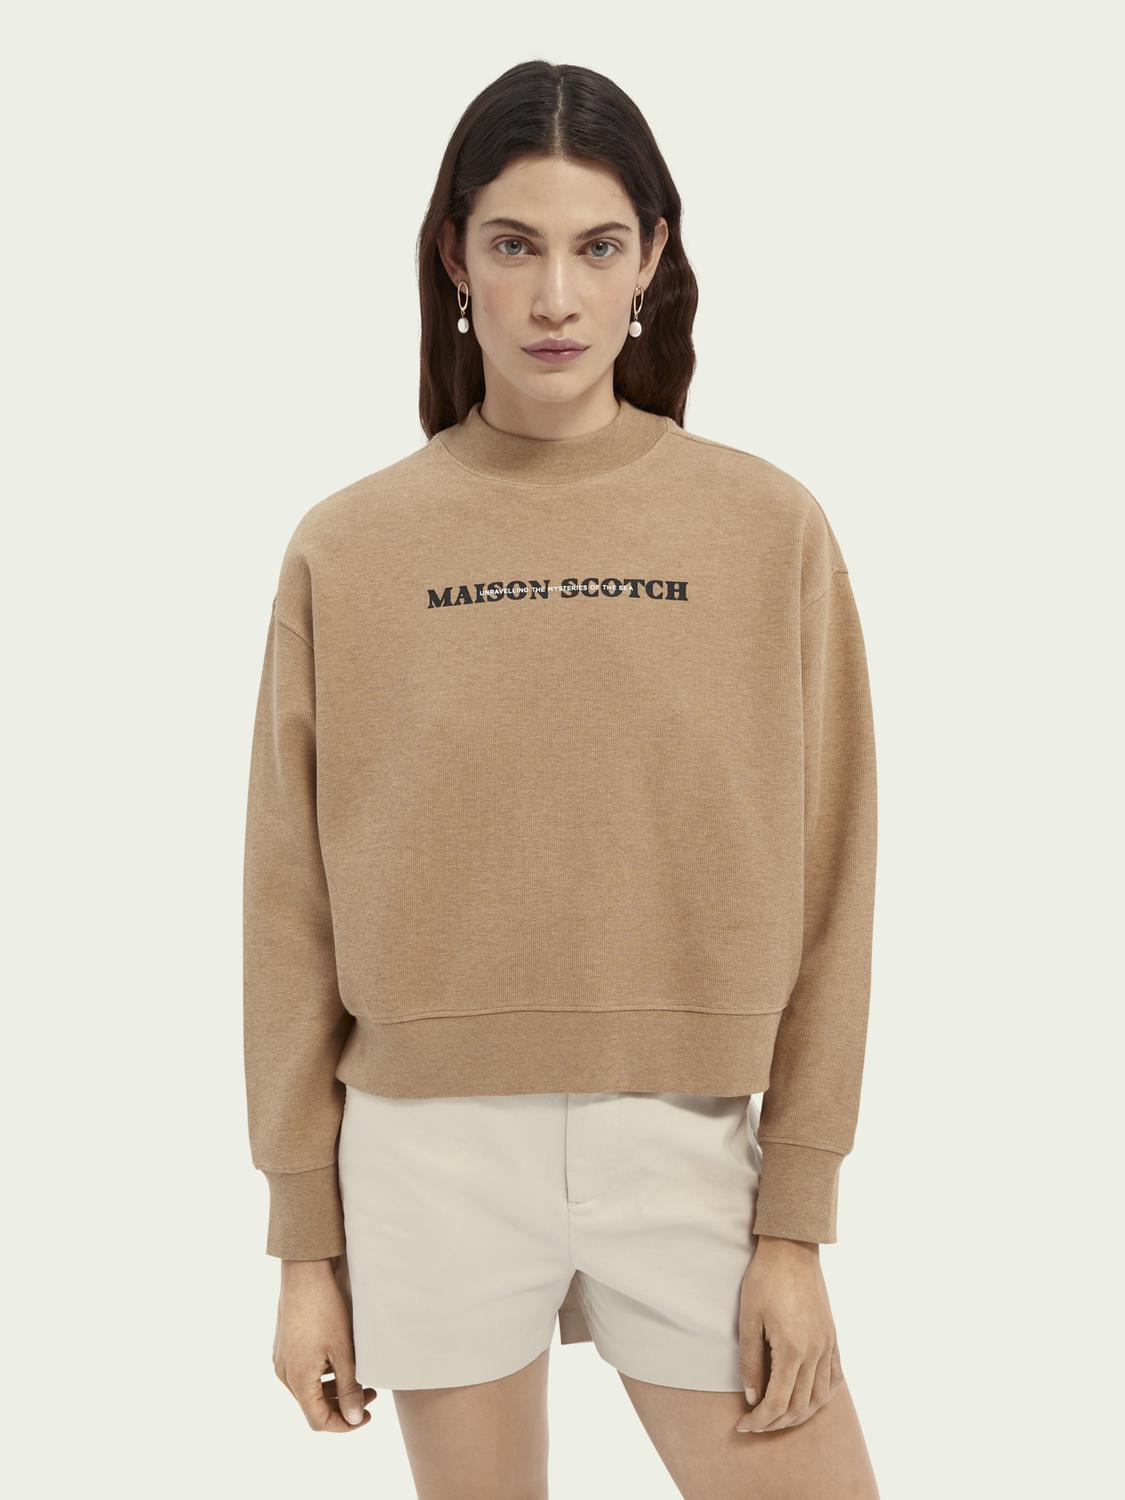 Relaxed fit high neck graphic sweater